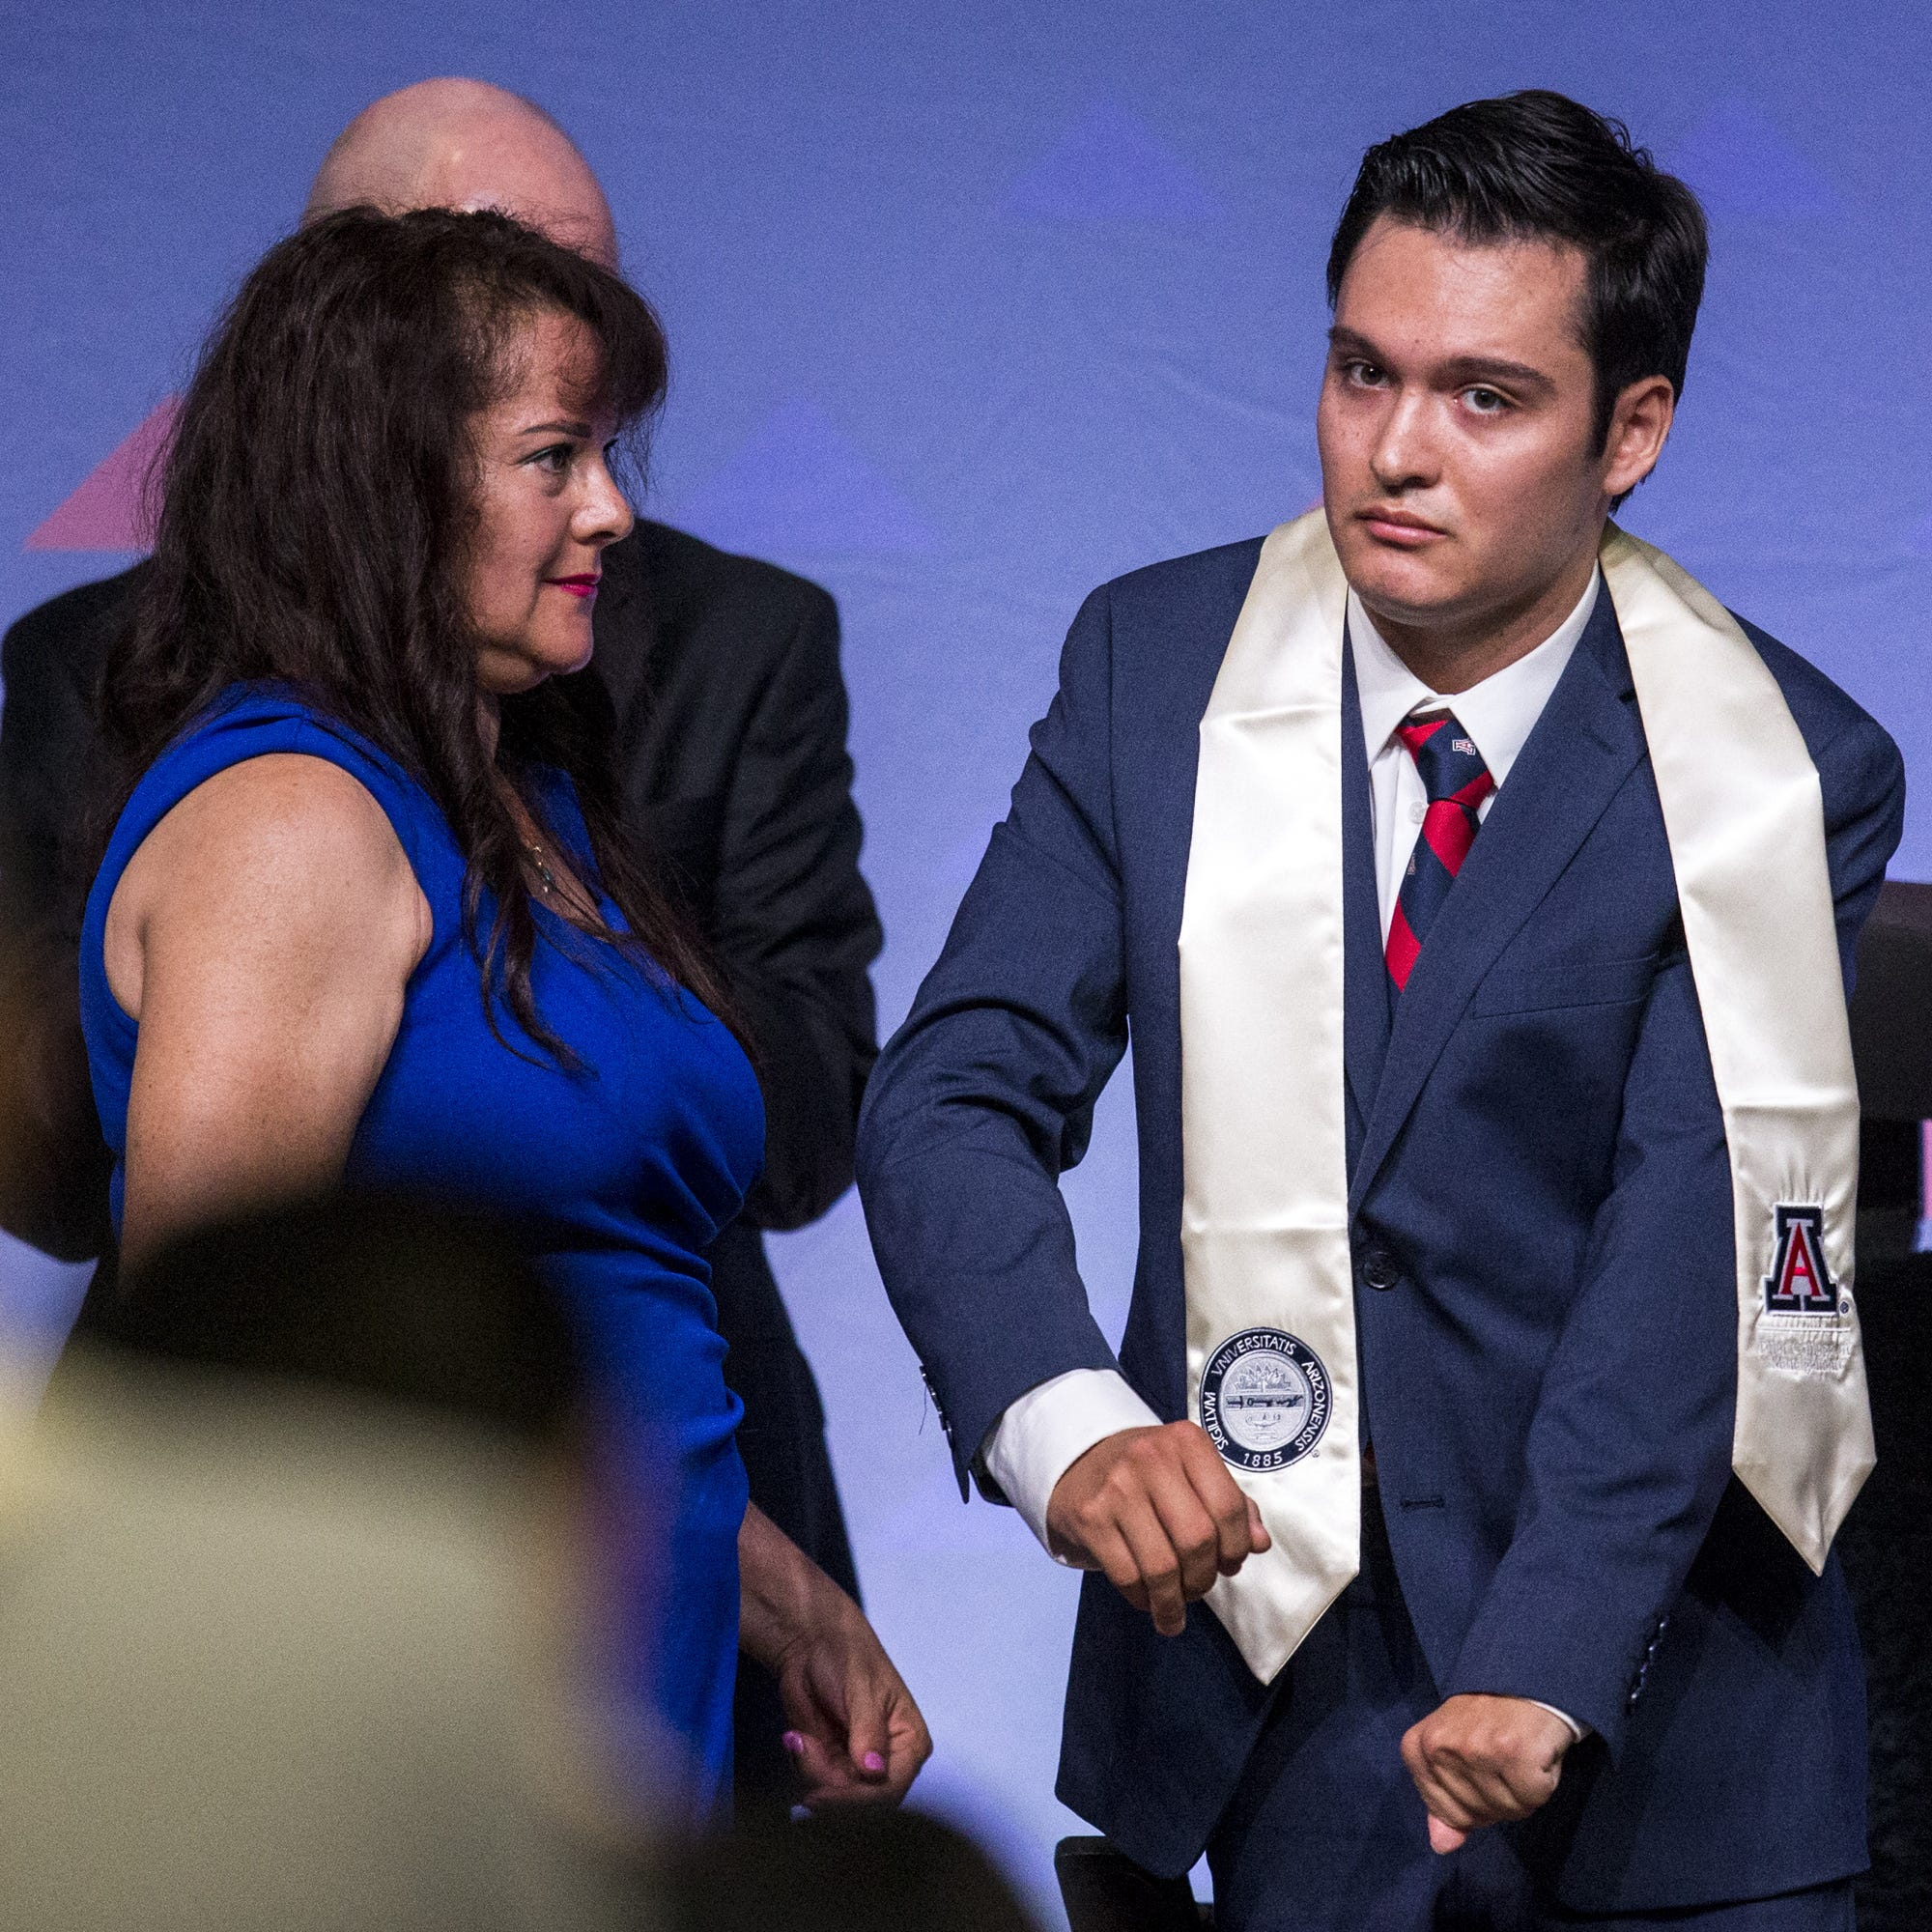 Giant steps: A mother's resolve and a son's grit give a UA student his dream of walking at graduation